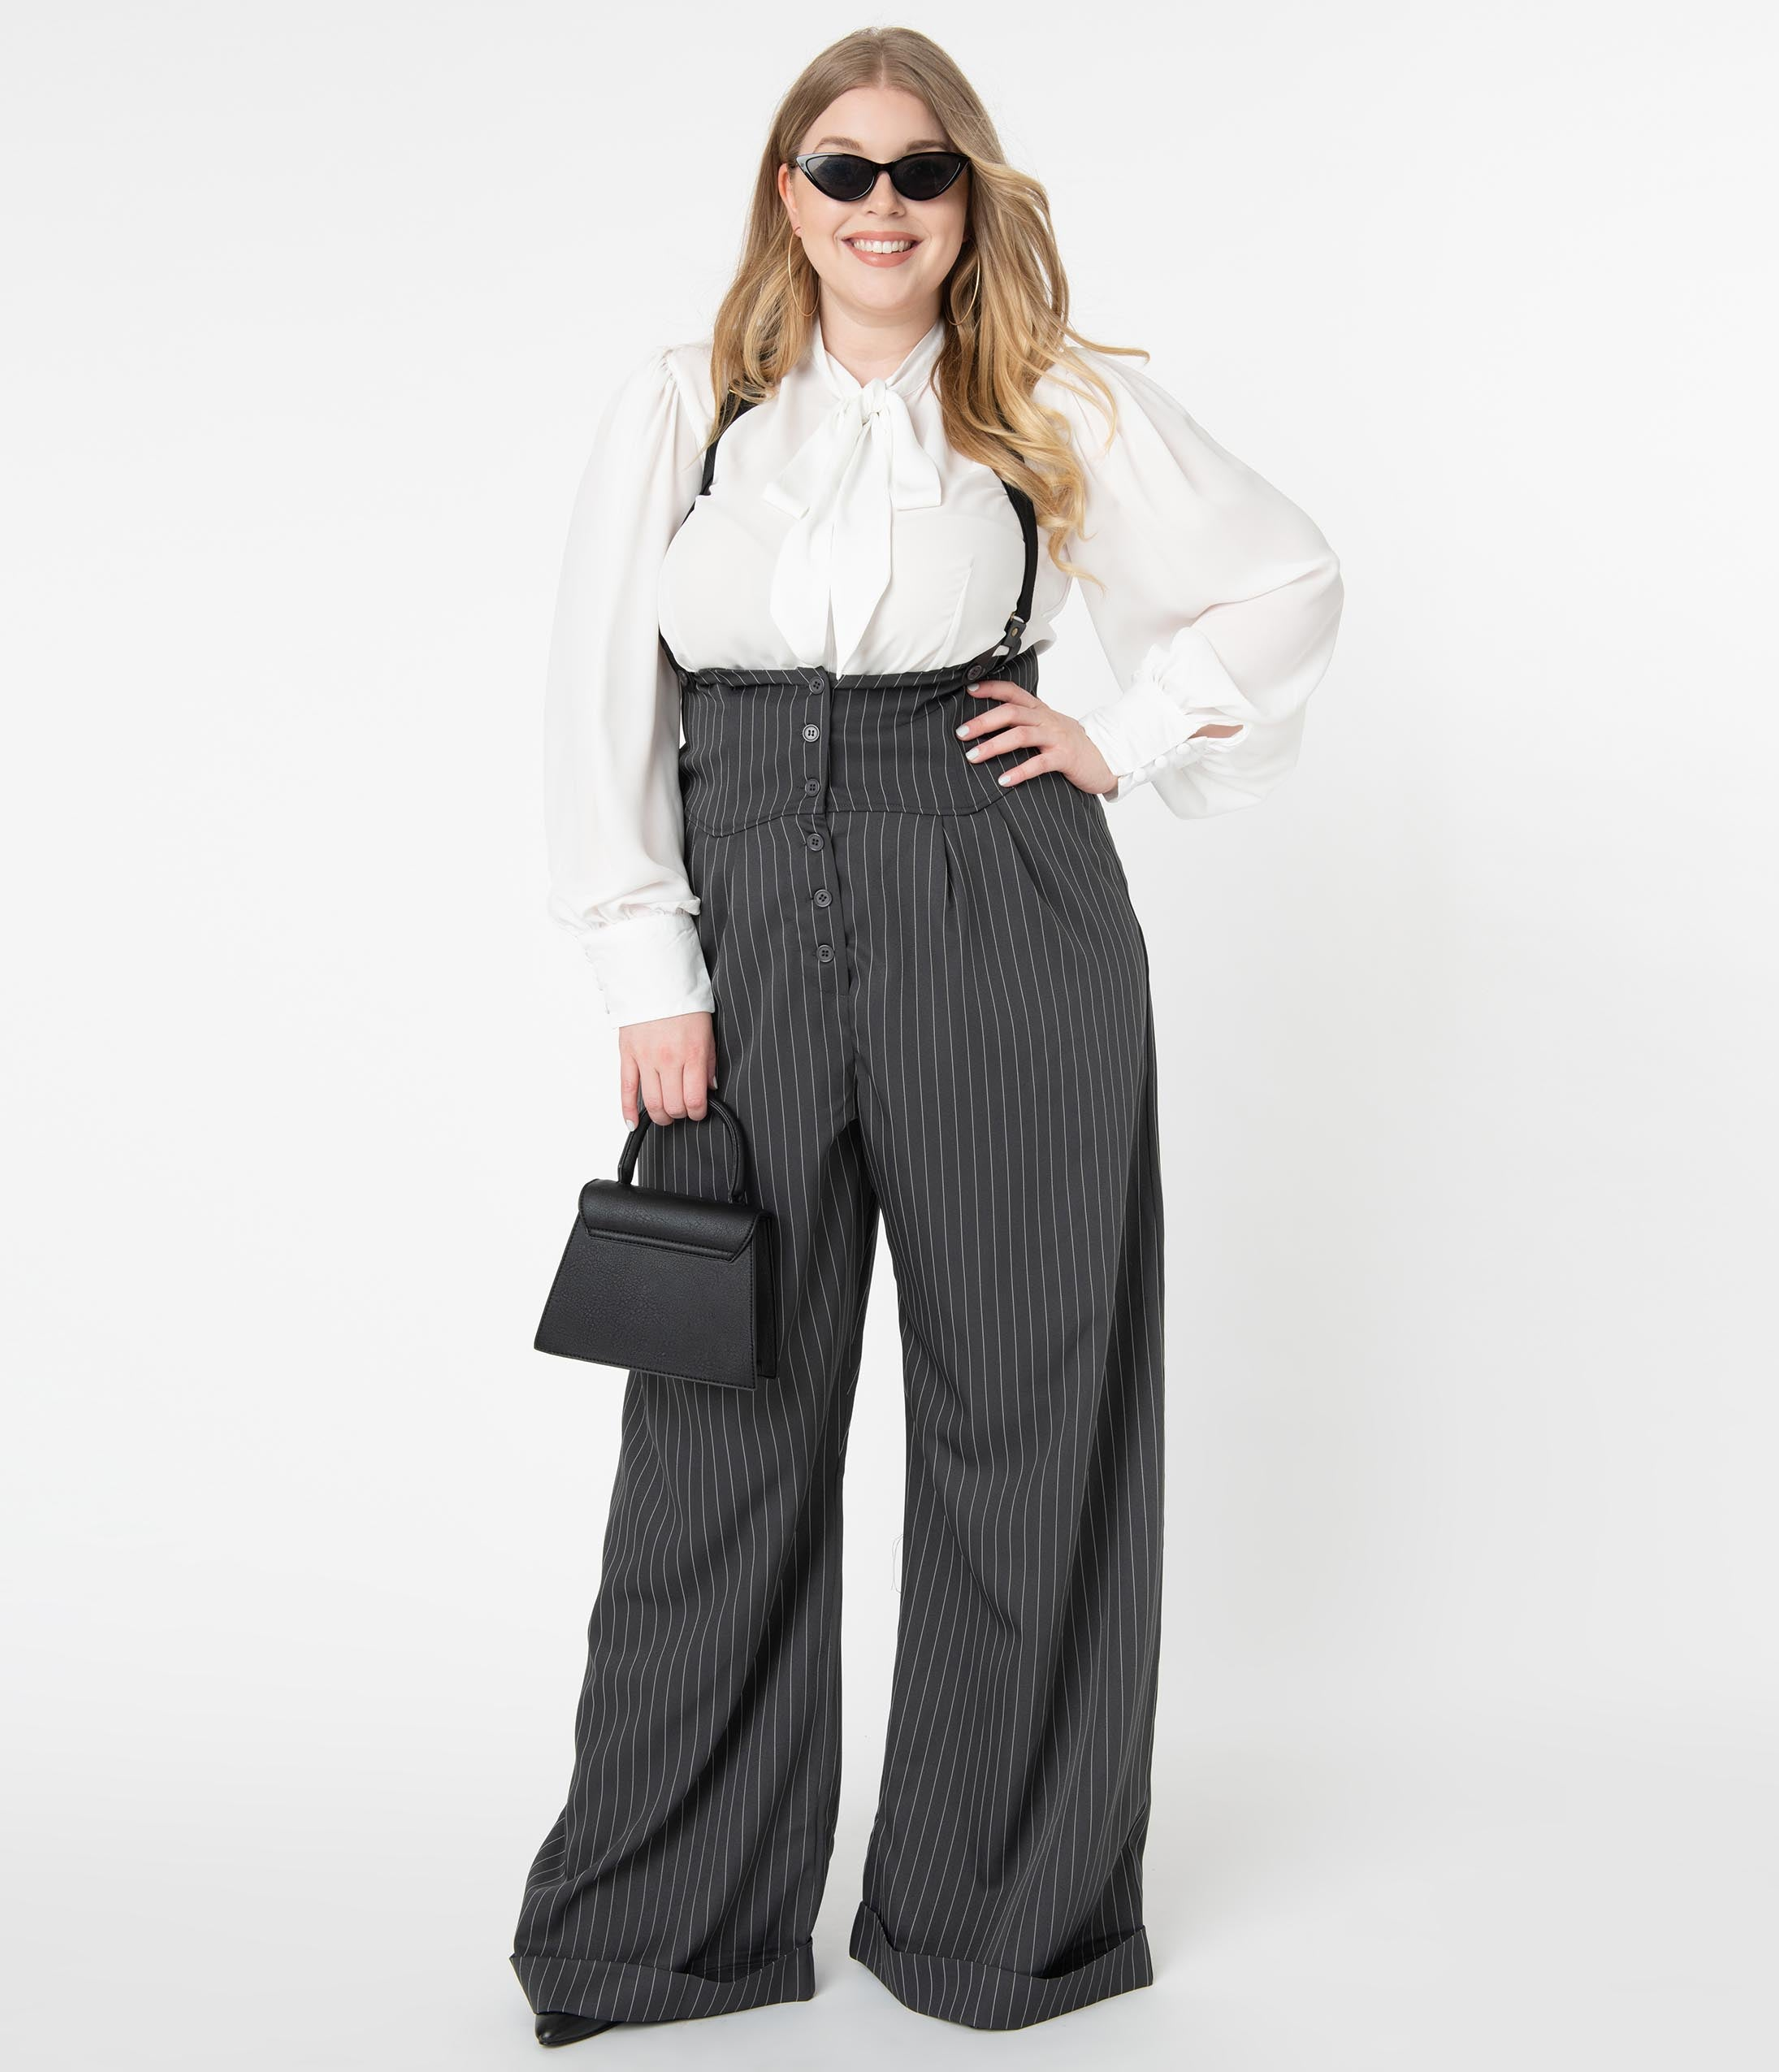 1940s Swing Pants & Sailor Trousers- Wide Leg, High Waist Unique Vintage Plus Size 1930S Charcoal Grey Pinstripe Thelma Suspender Pants $78.00 AT vintagedancer.com